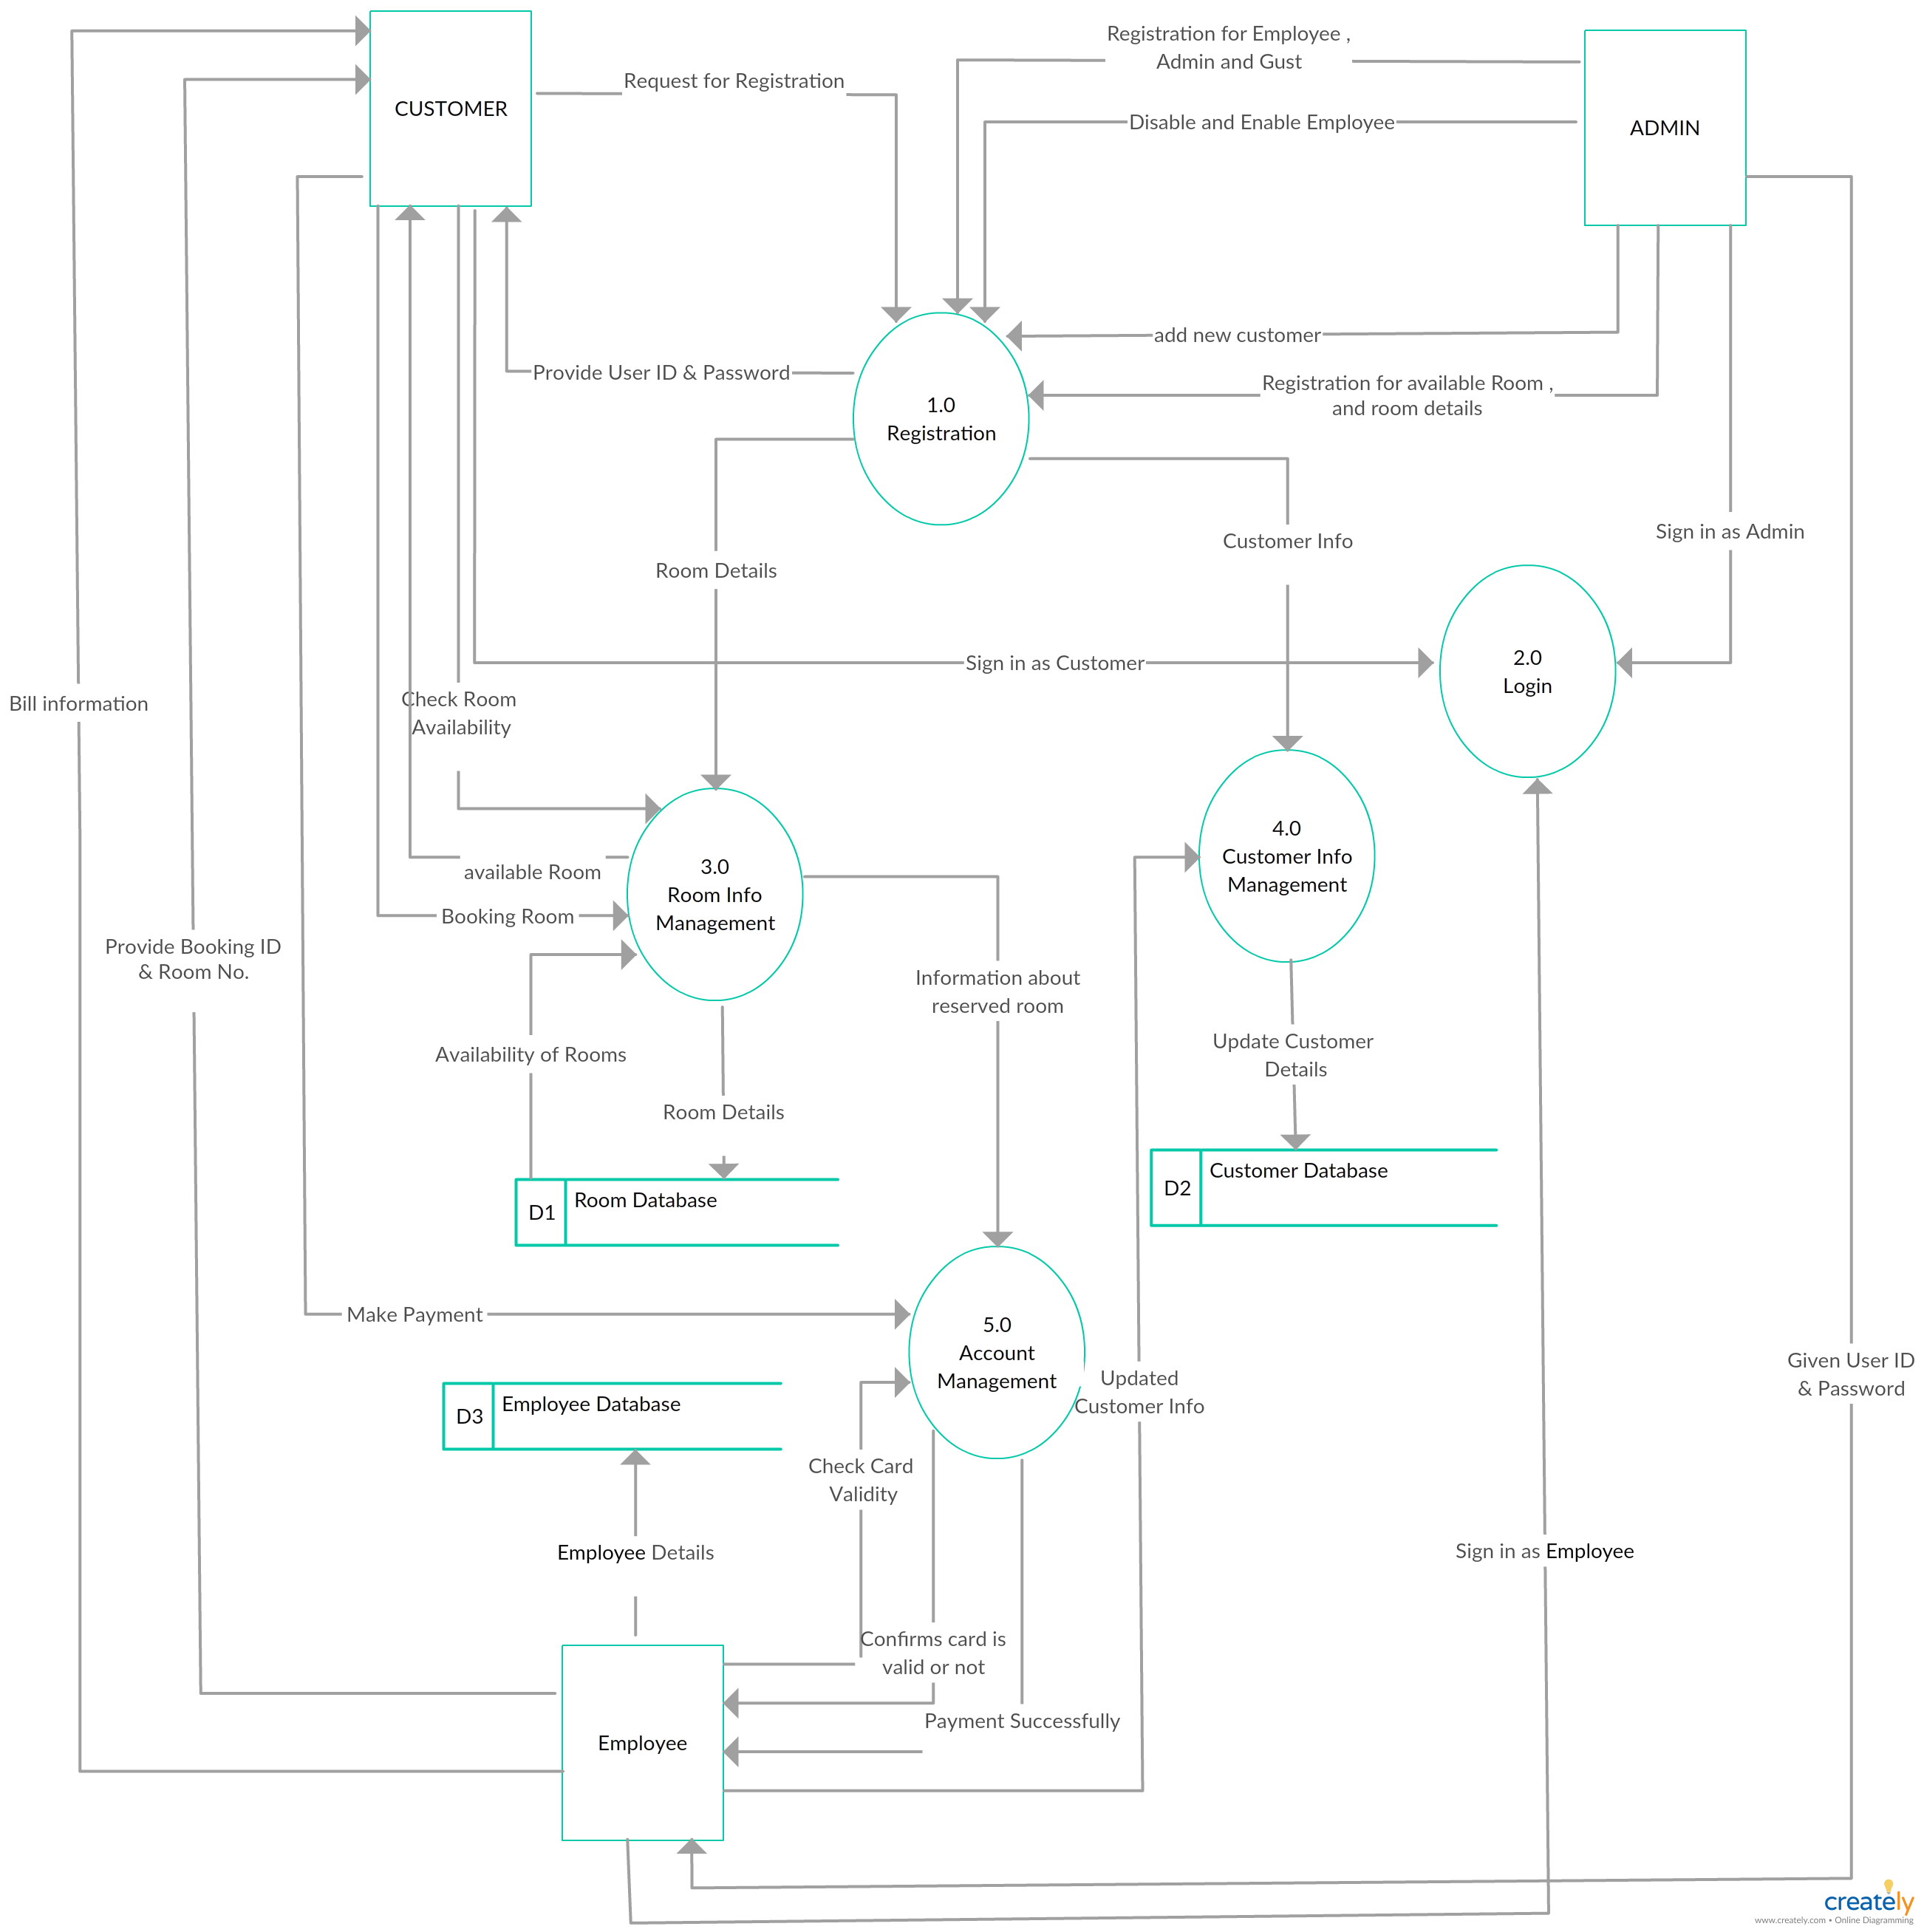 medium resolution of dfd for hotel management system level 1 dfd template for a hotel management system you can use this data flow diagram to create level 2 dfd diagrams too